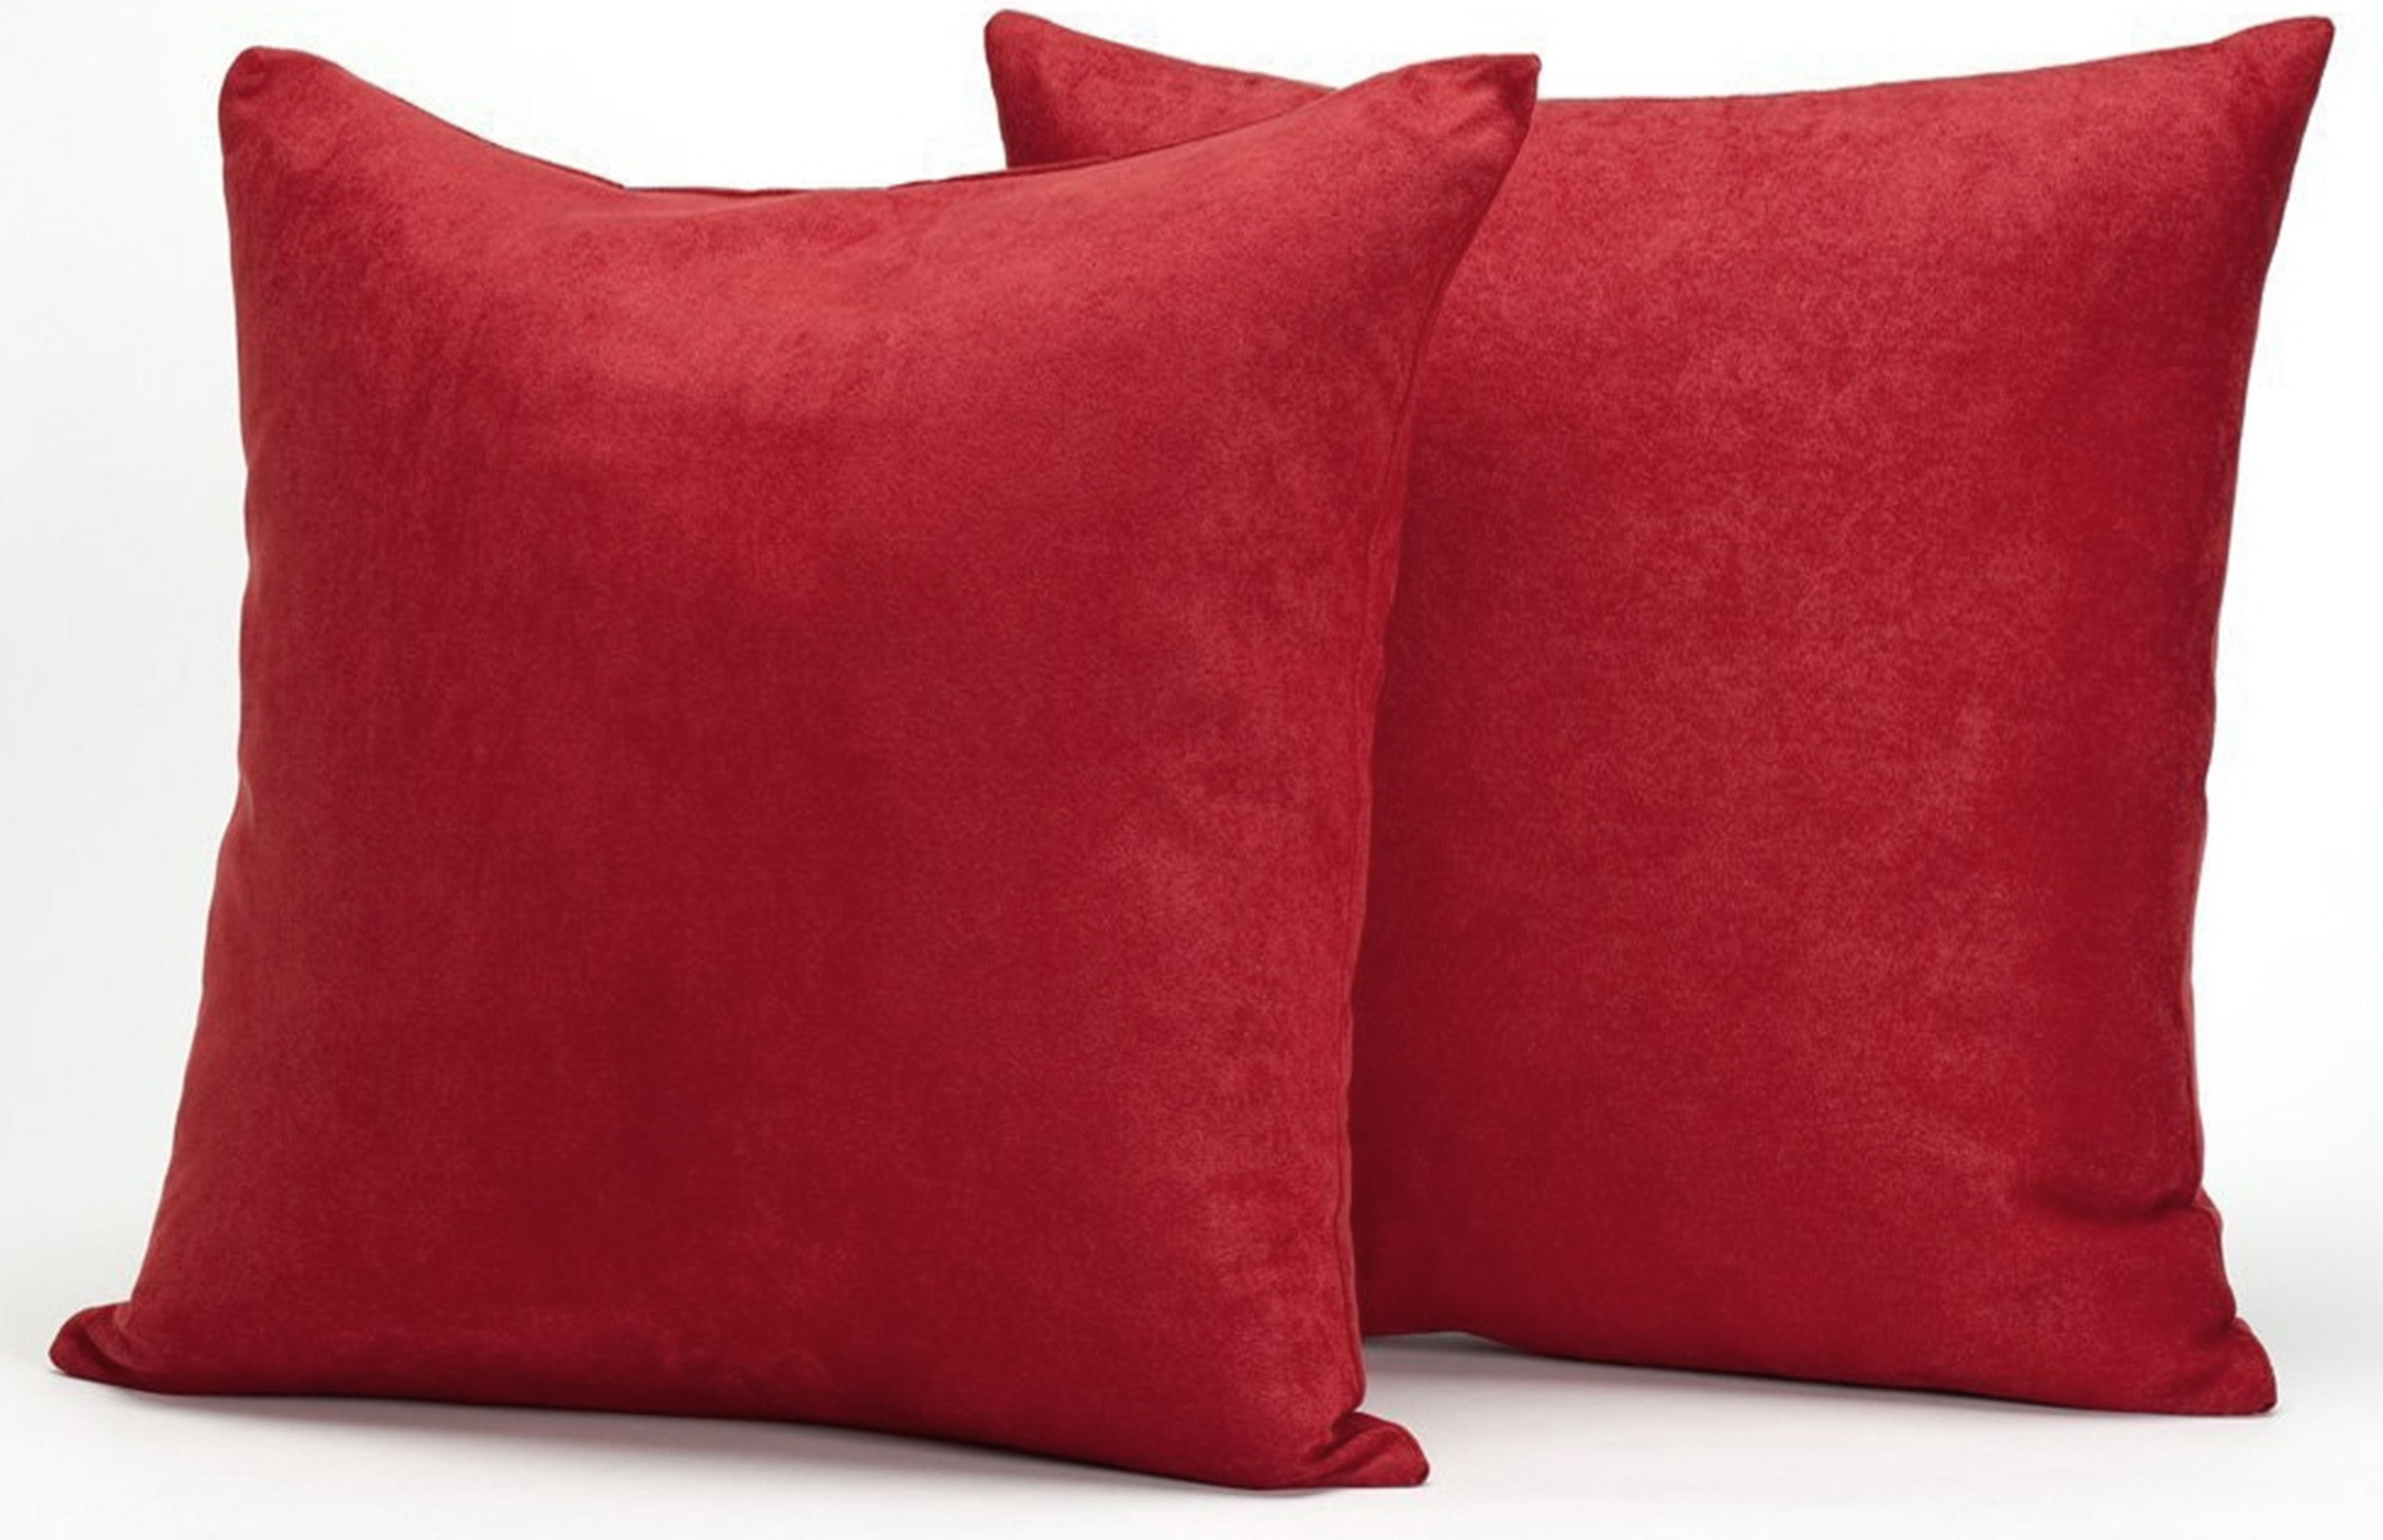 Throw Pillow Filling : Red Microsuede Couch Pillows / Sets of Two Throw Pillows, 18-Inch-by-18-Inch- Decorative Solid ...